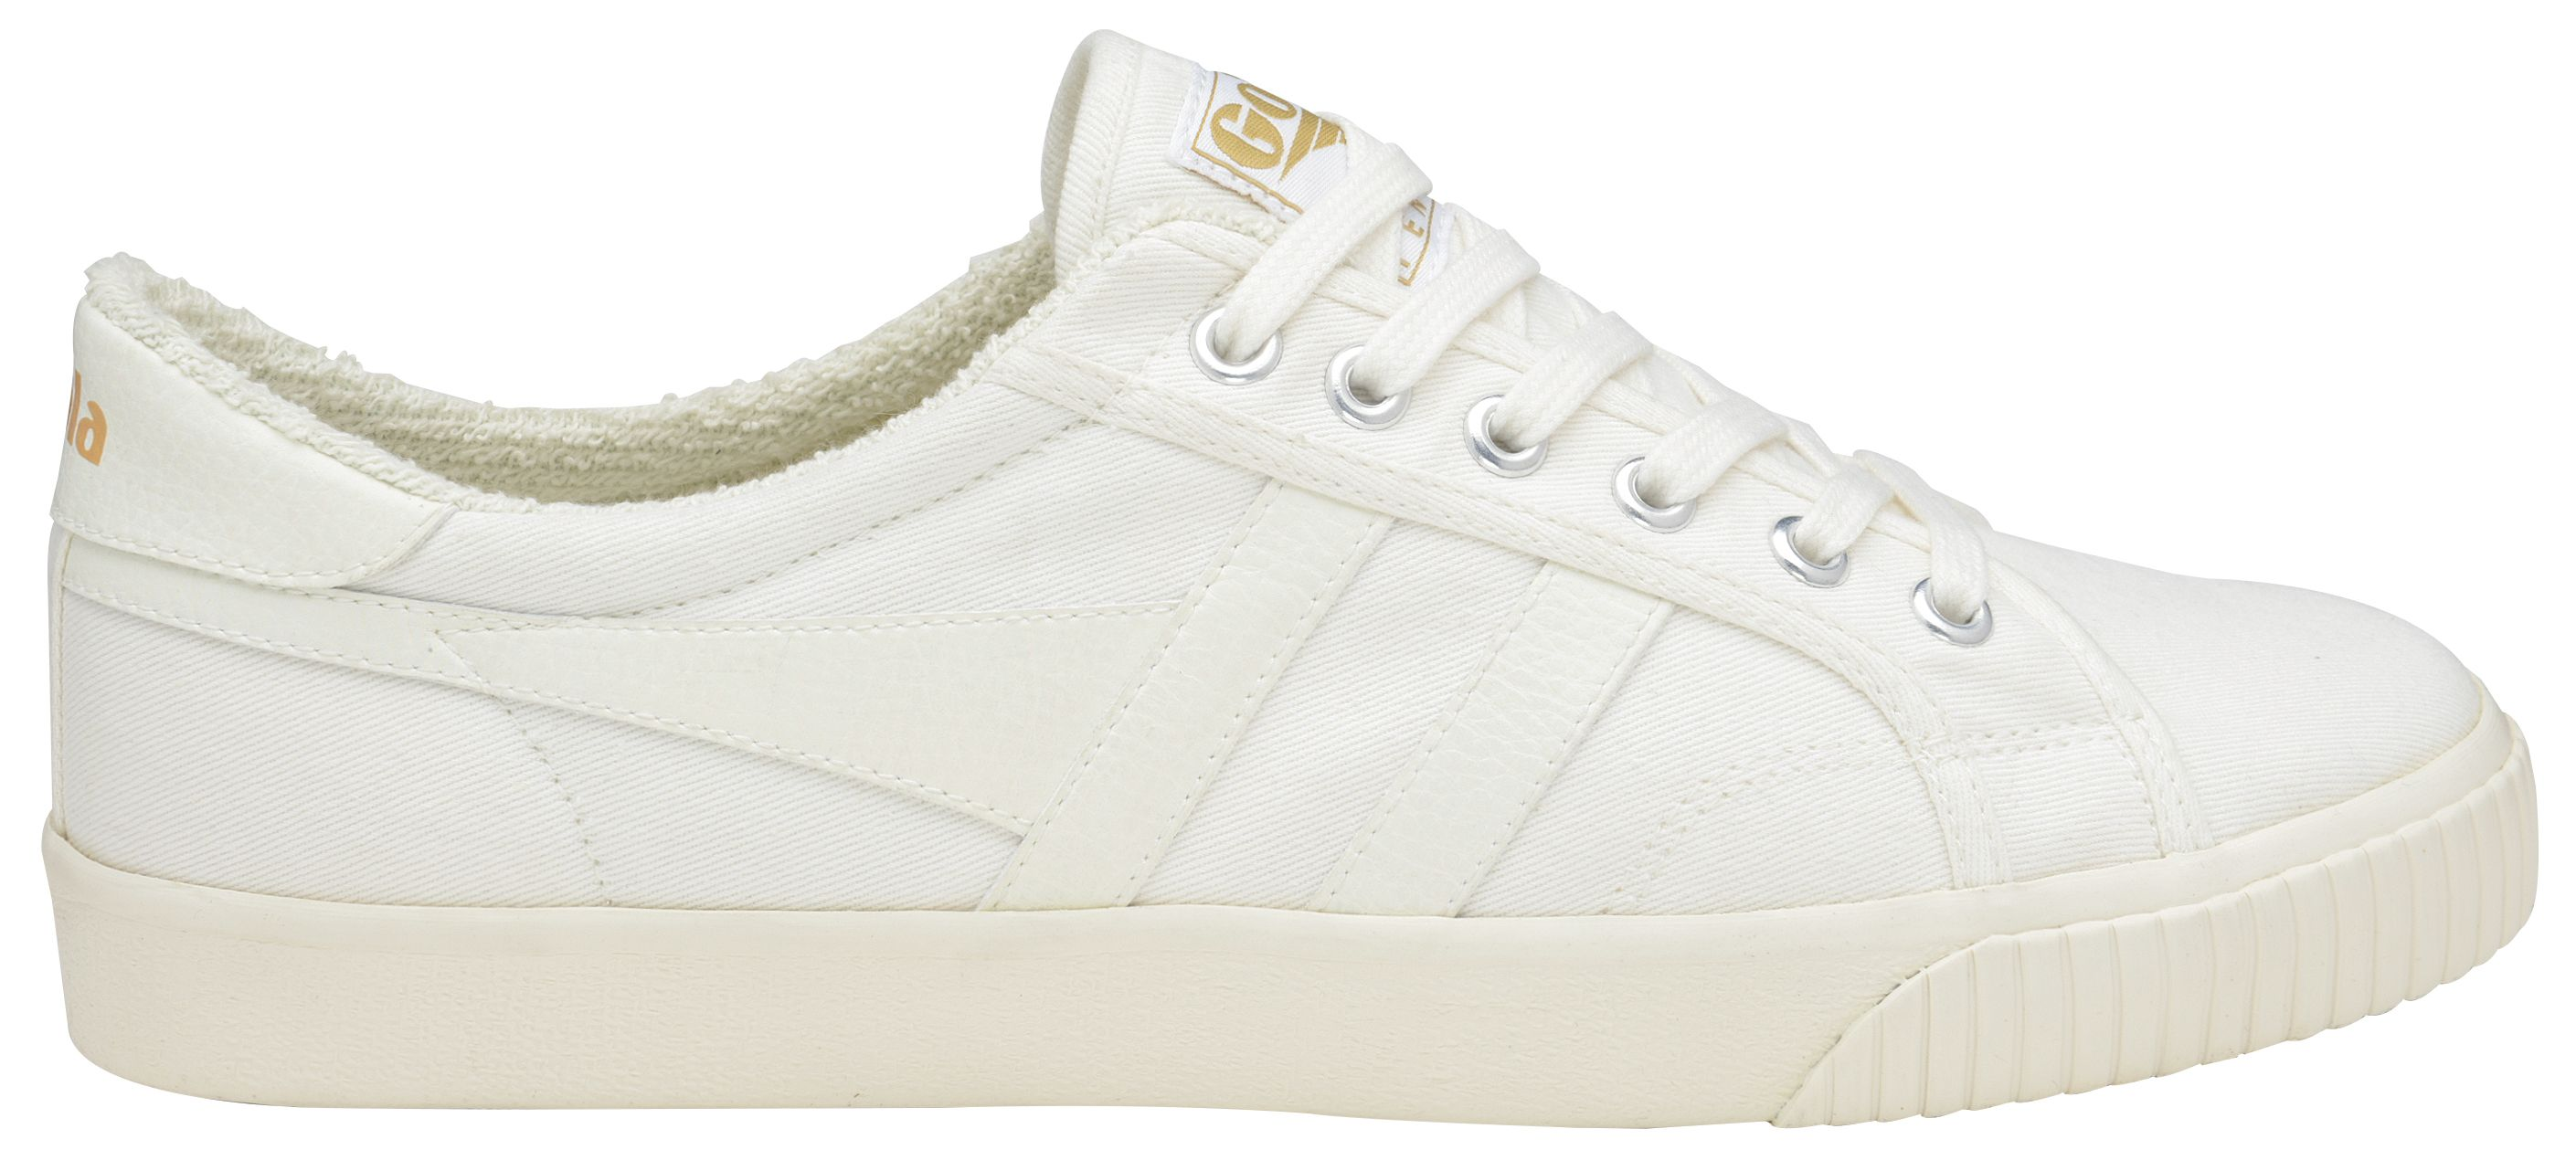 Gola Tennis Mark Cox lace up trainers White